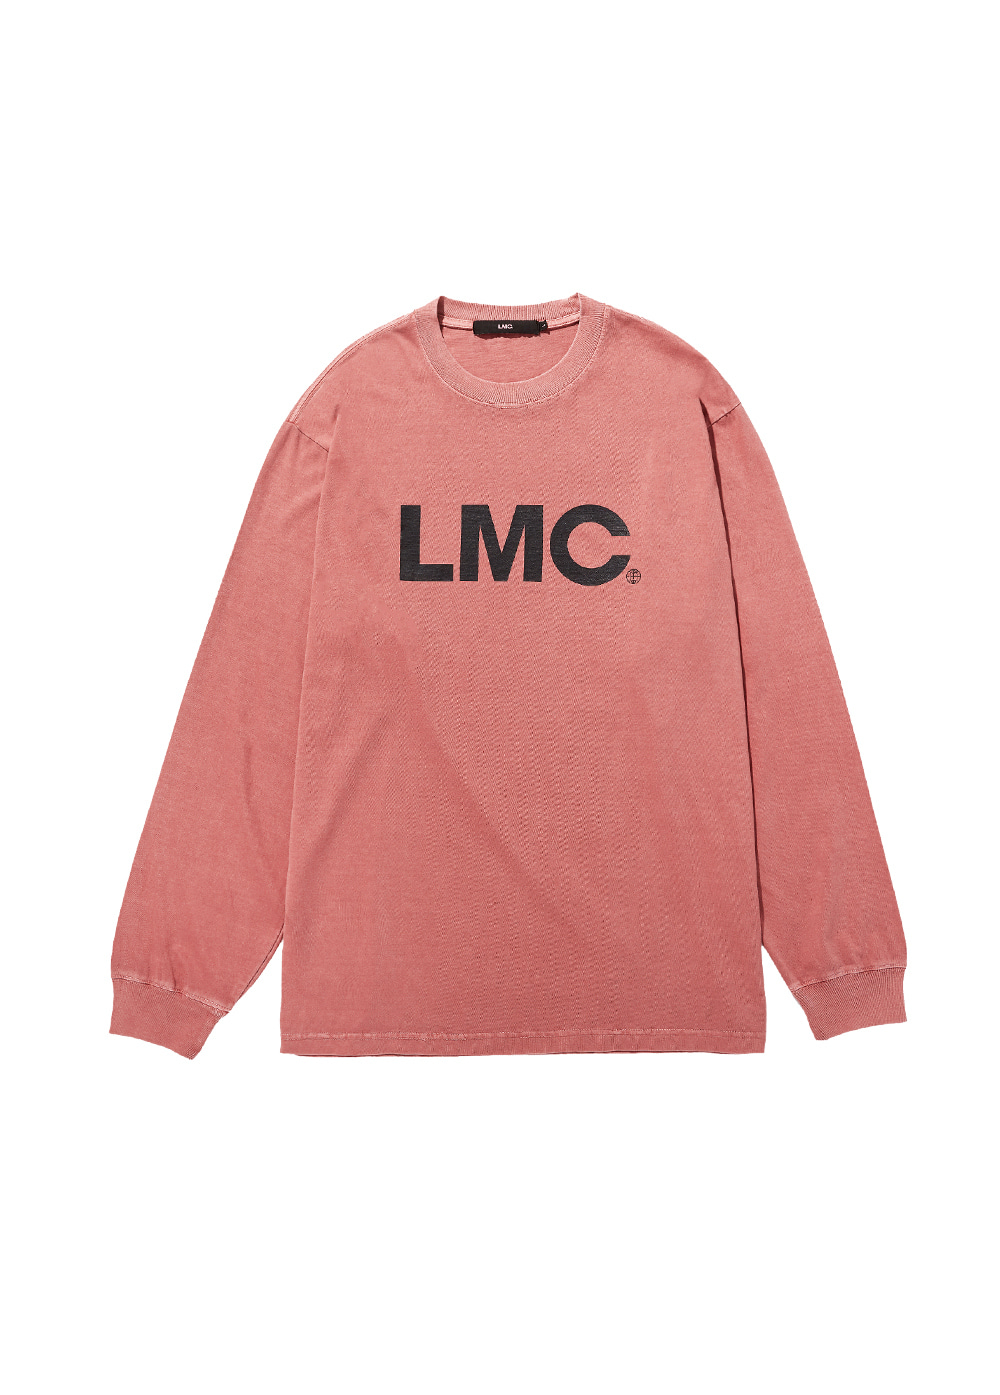 LMC OG LONG SLV TEE dark pink